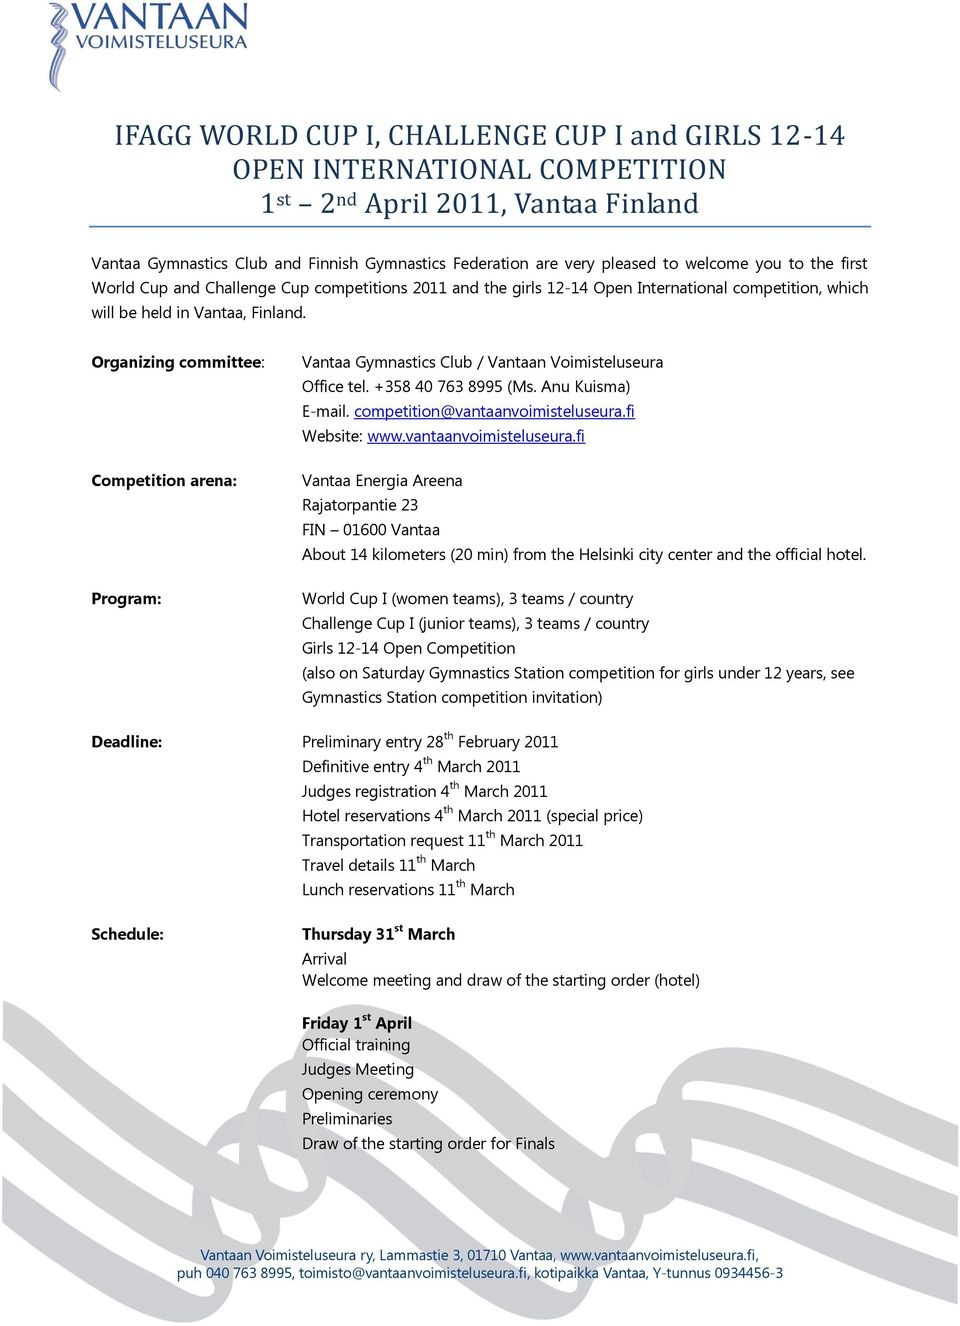 Organizing committee: Competition arena: Program: Vantaa Gymnastics Club / Vantaan Voimisteluseura Office tel. +358 40 763 8995 (Ms. Anu Kuisma) E-mail. competition@vantaanvoimisteluseura.